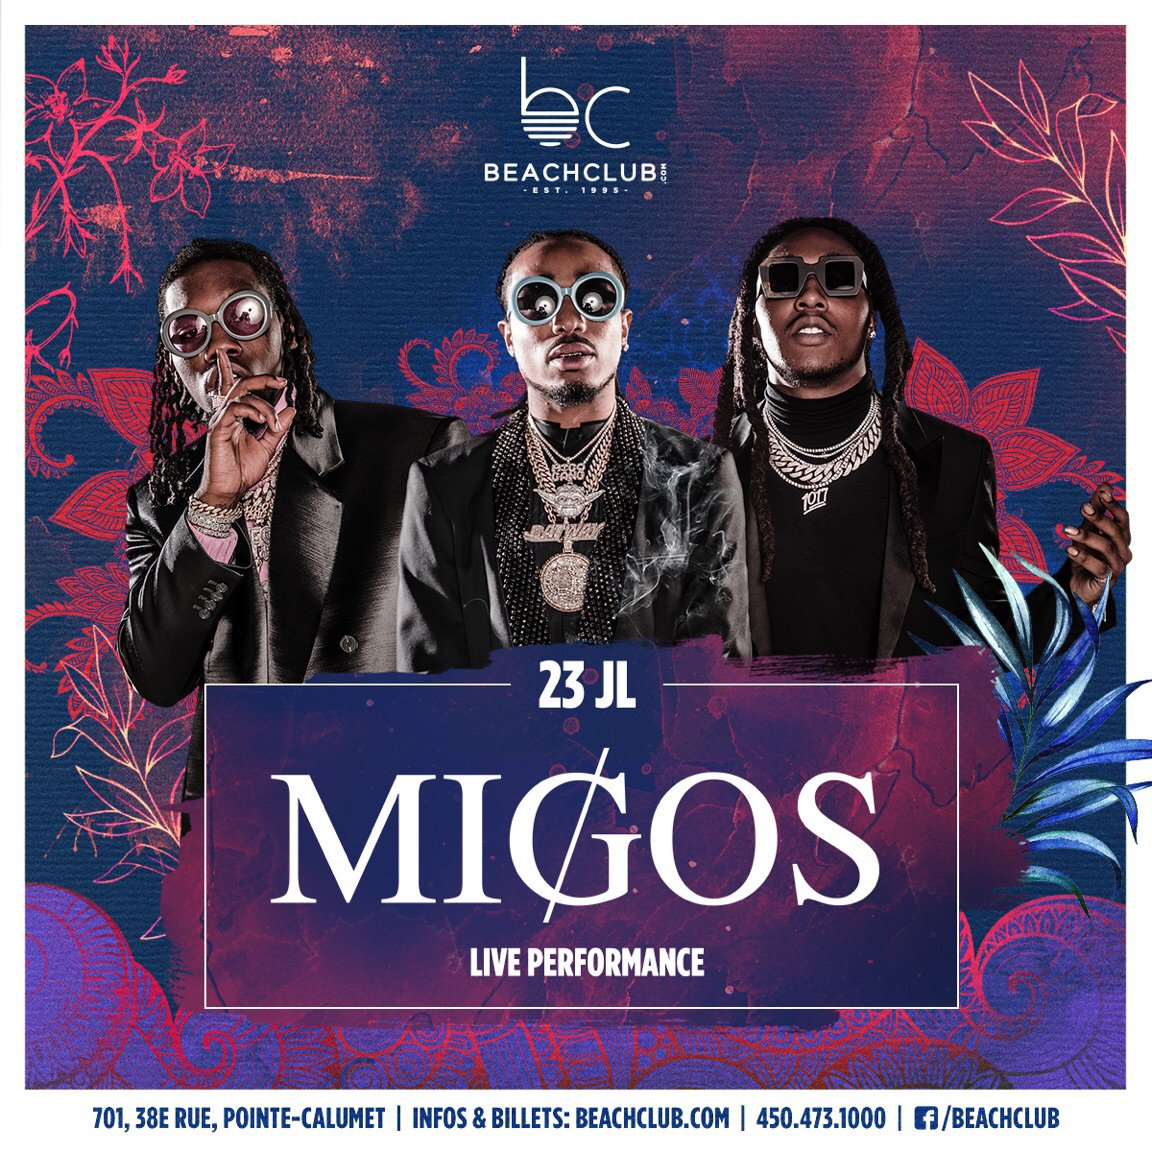 @Migos tickets are selling fast. Get yours now at beachclub.com/tickets